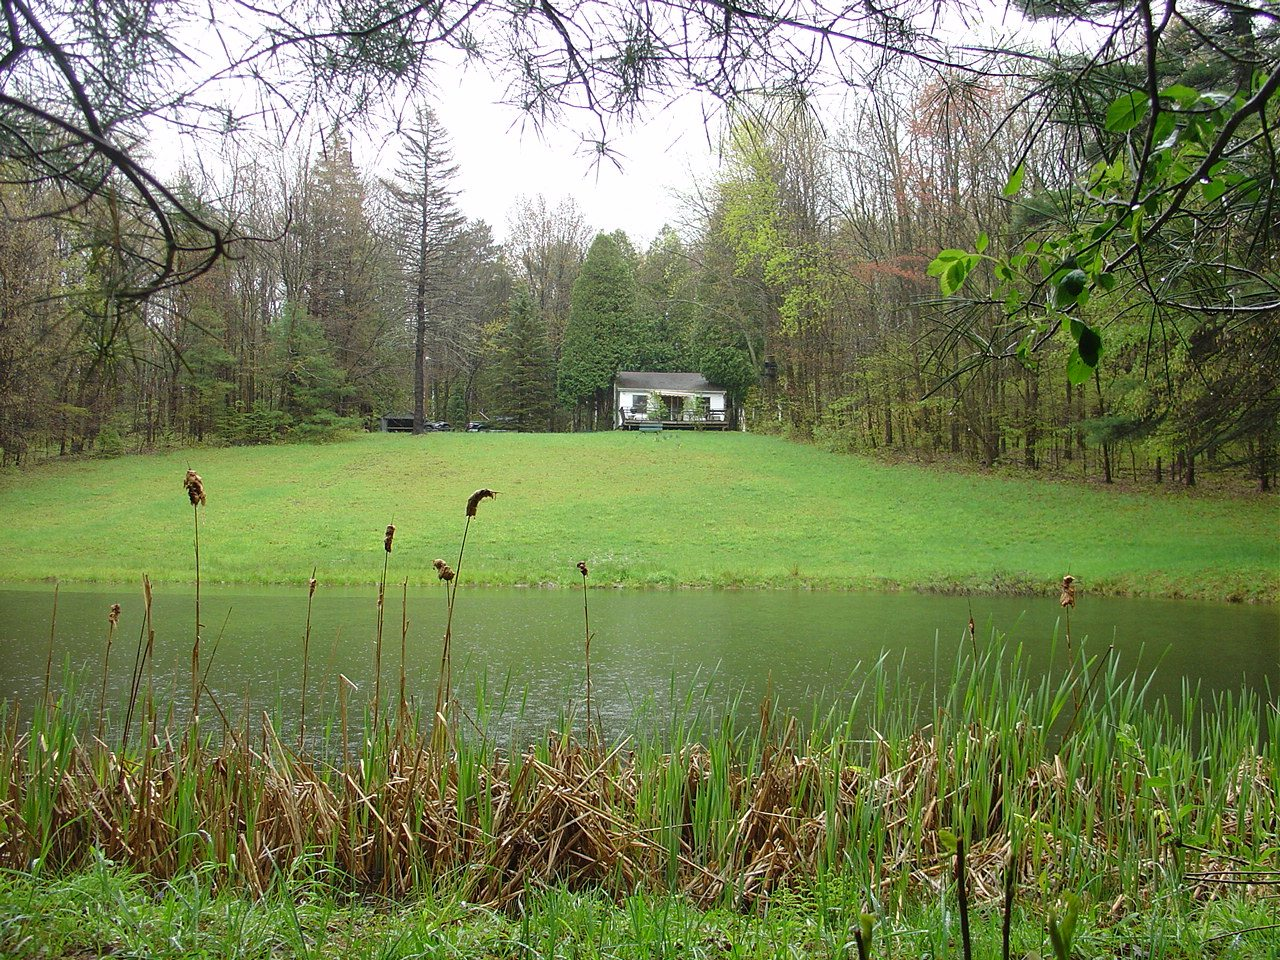 pond and camp